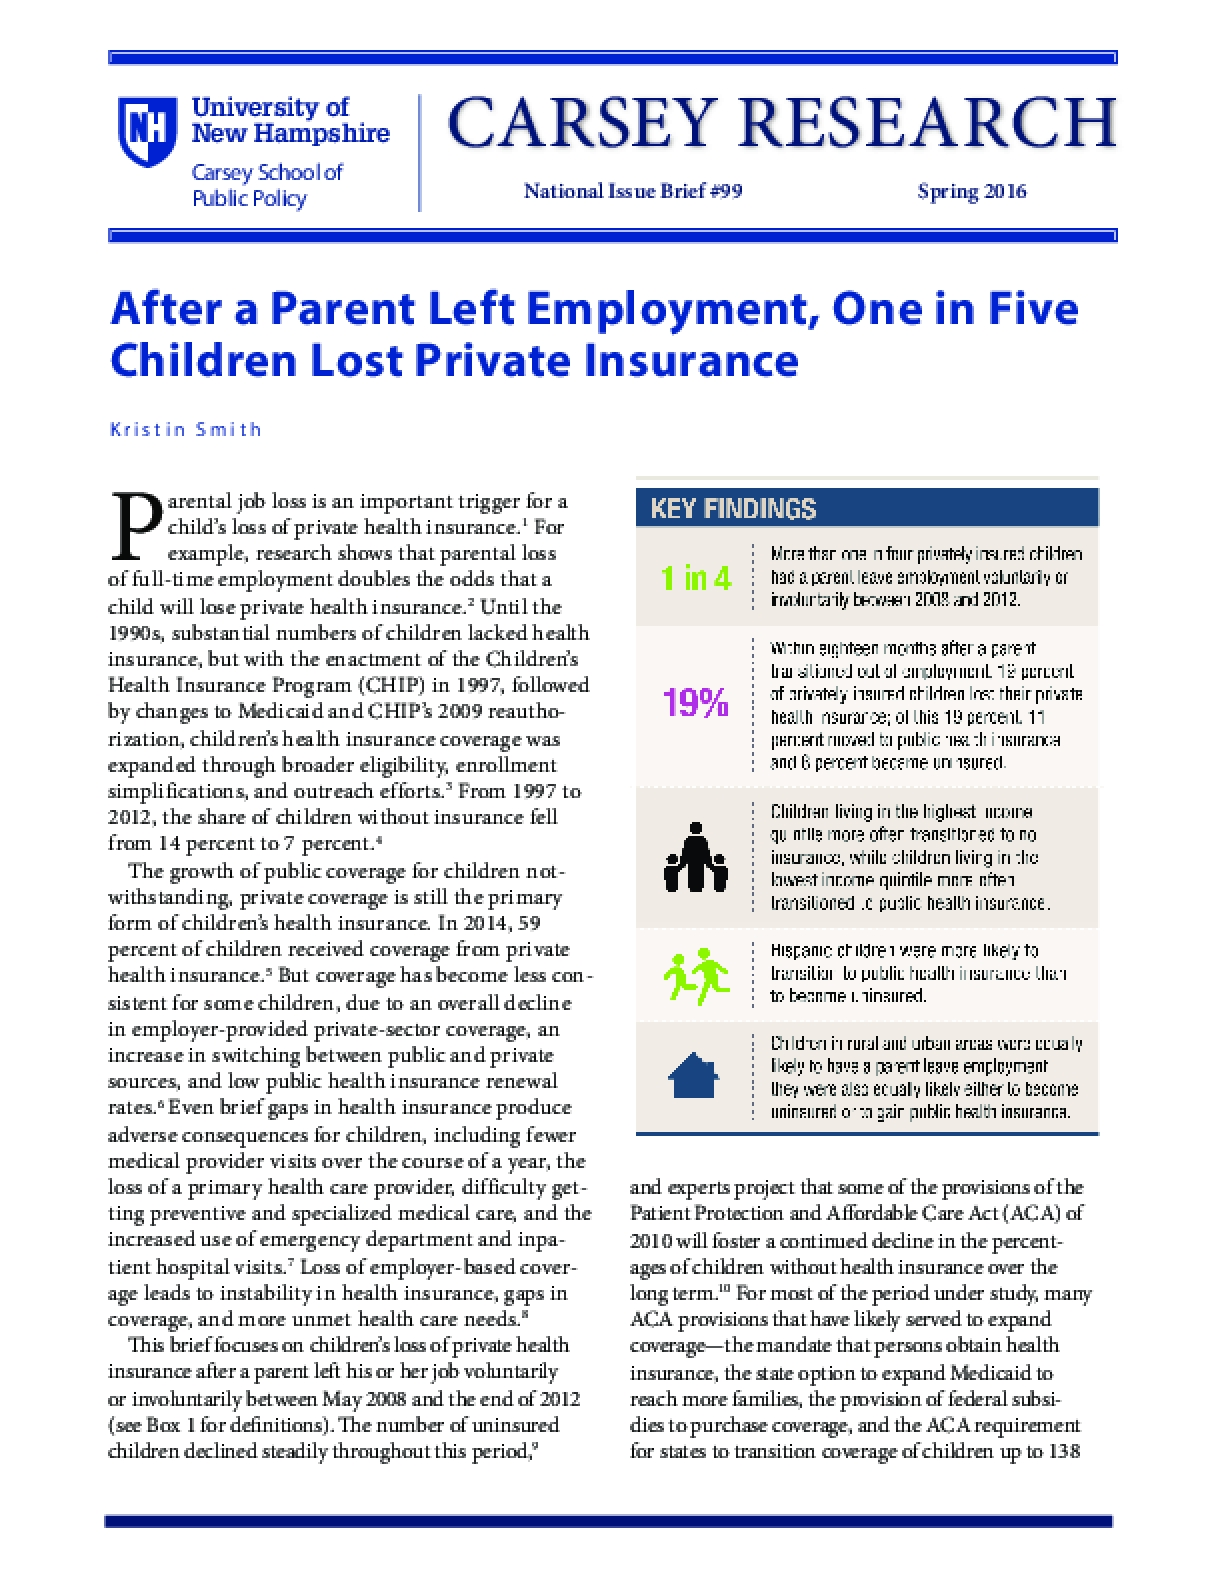 After a Parent Left Employment, One in Five Children Lost Private Insurance